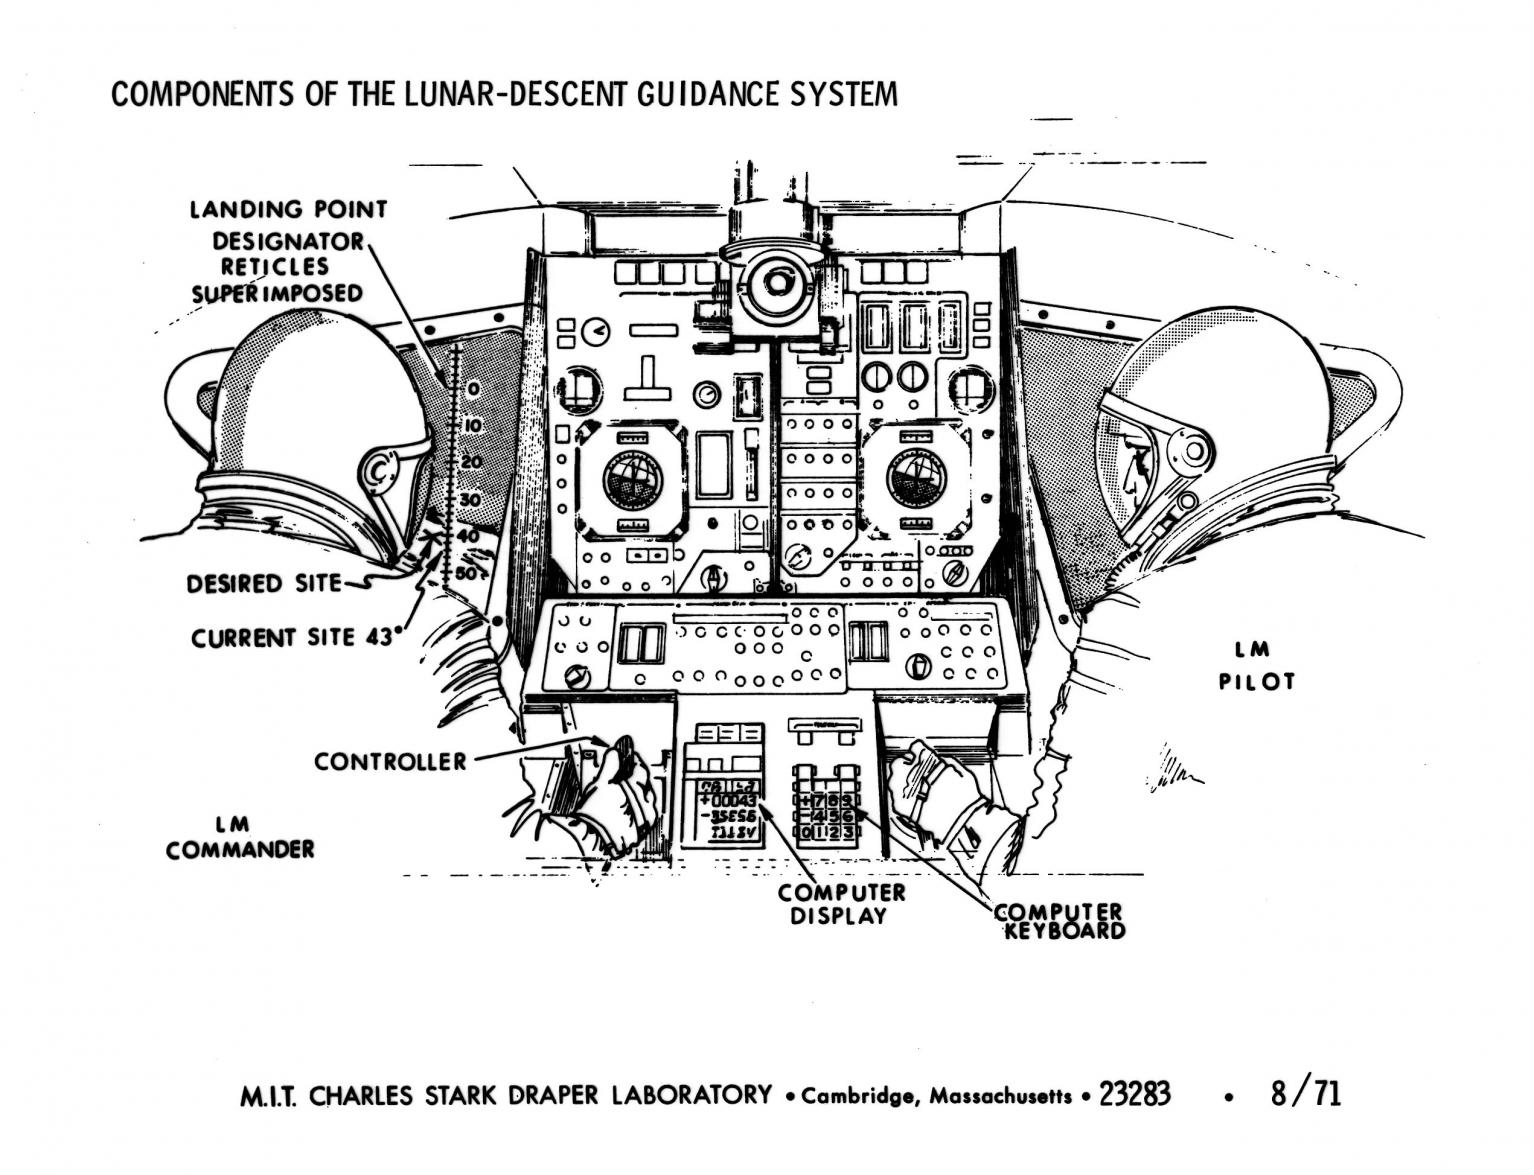 medium resolution of components of the lunar descent guidance system